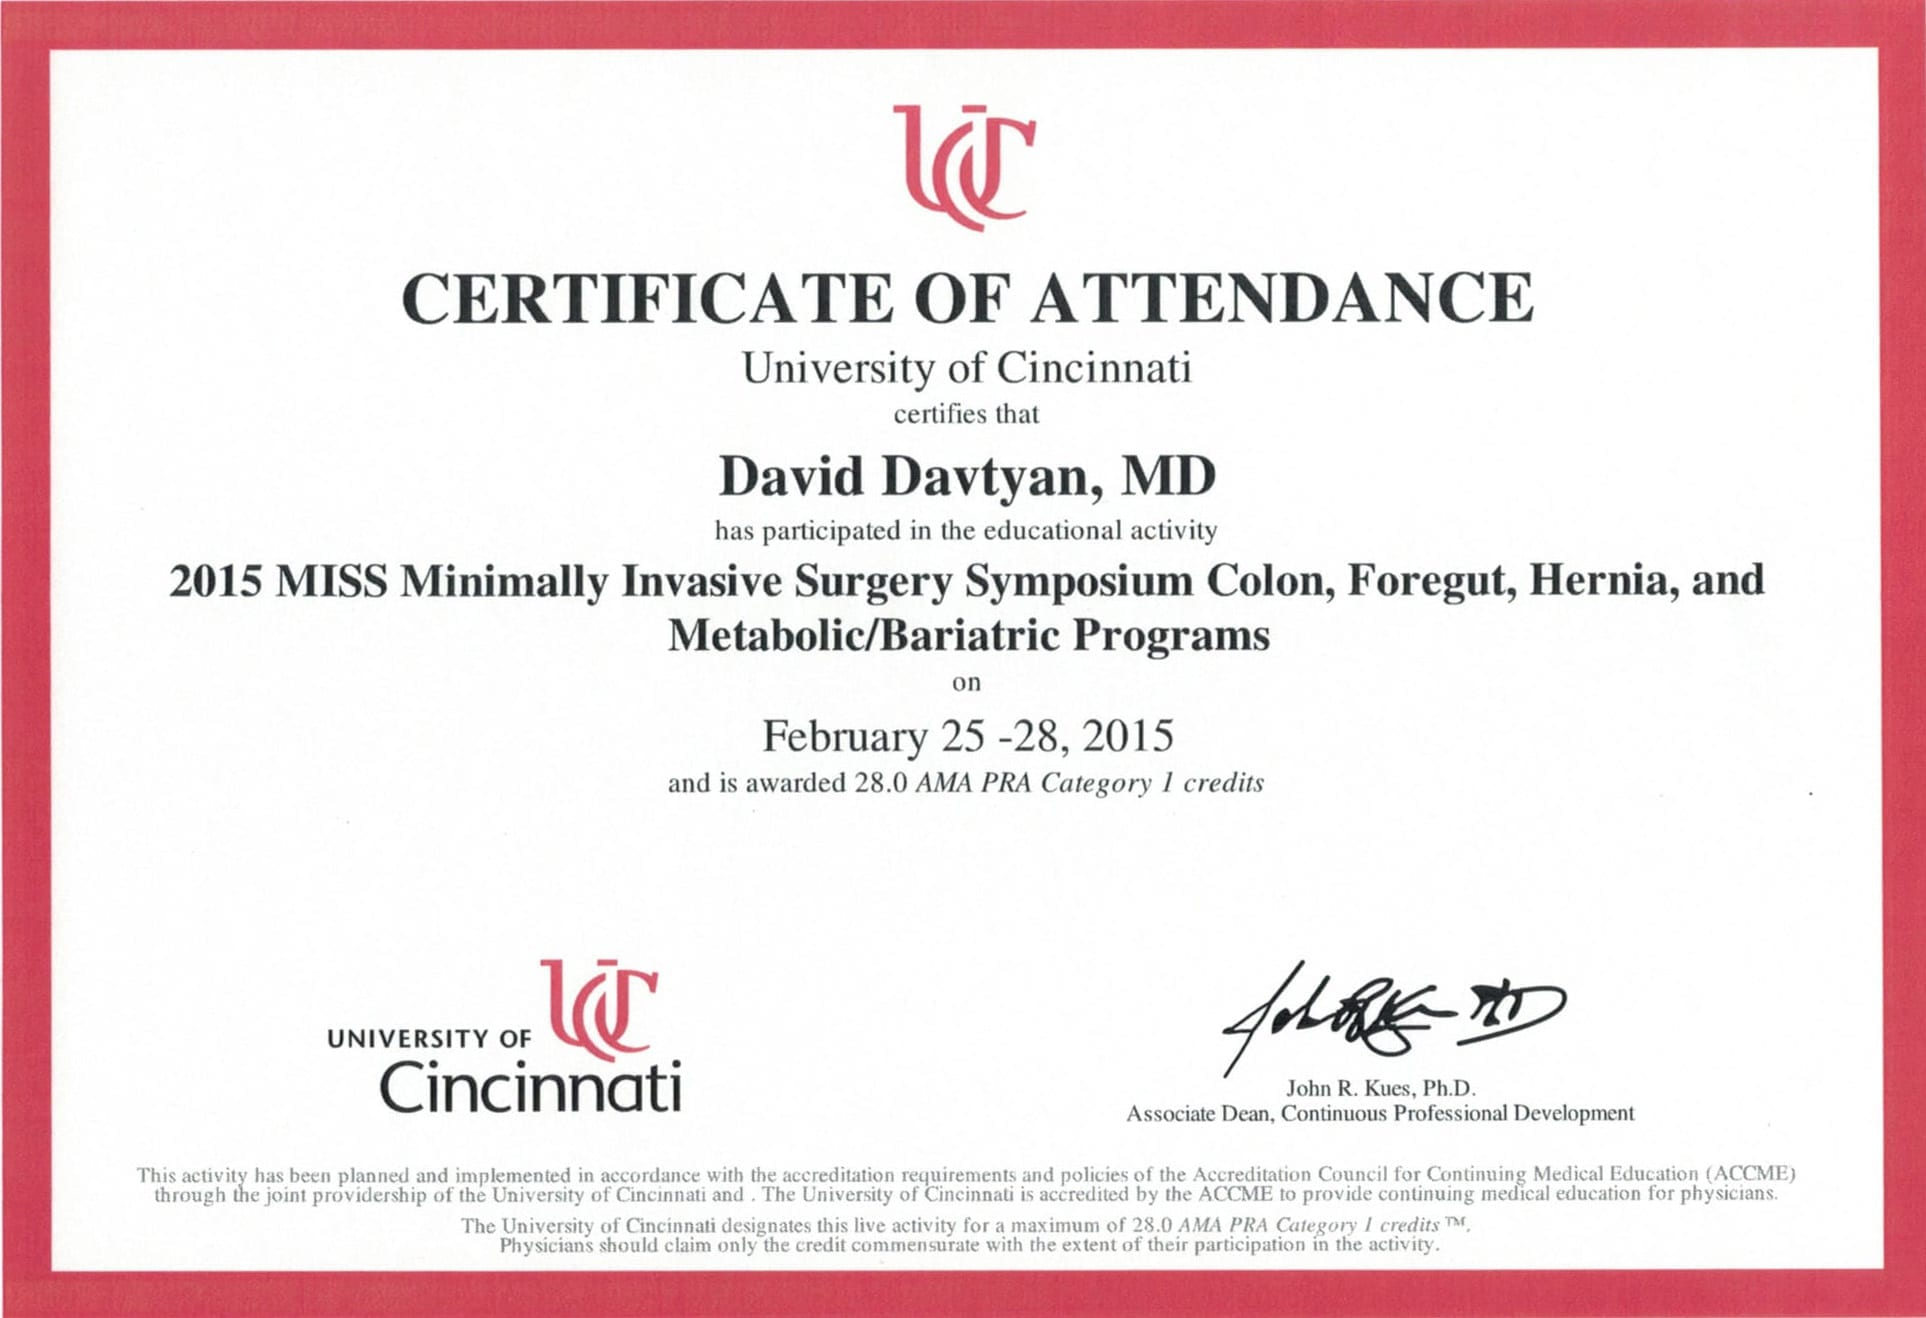 Dr. David Davtyan's 2015 Certificate University of Cincinnati MISS Minimally Invasive Surgery Symposium Colon Foregut Hernia